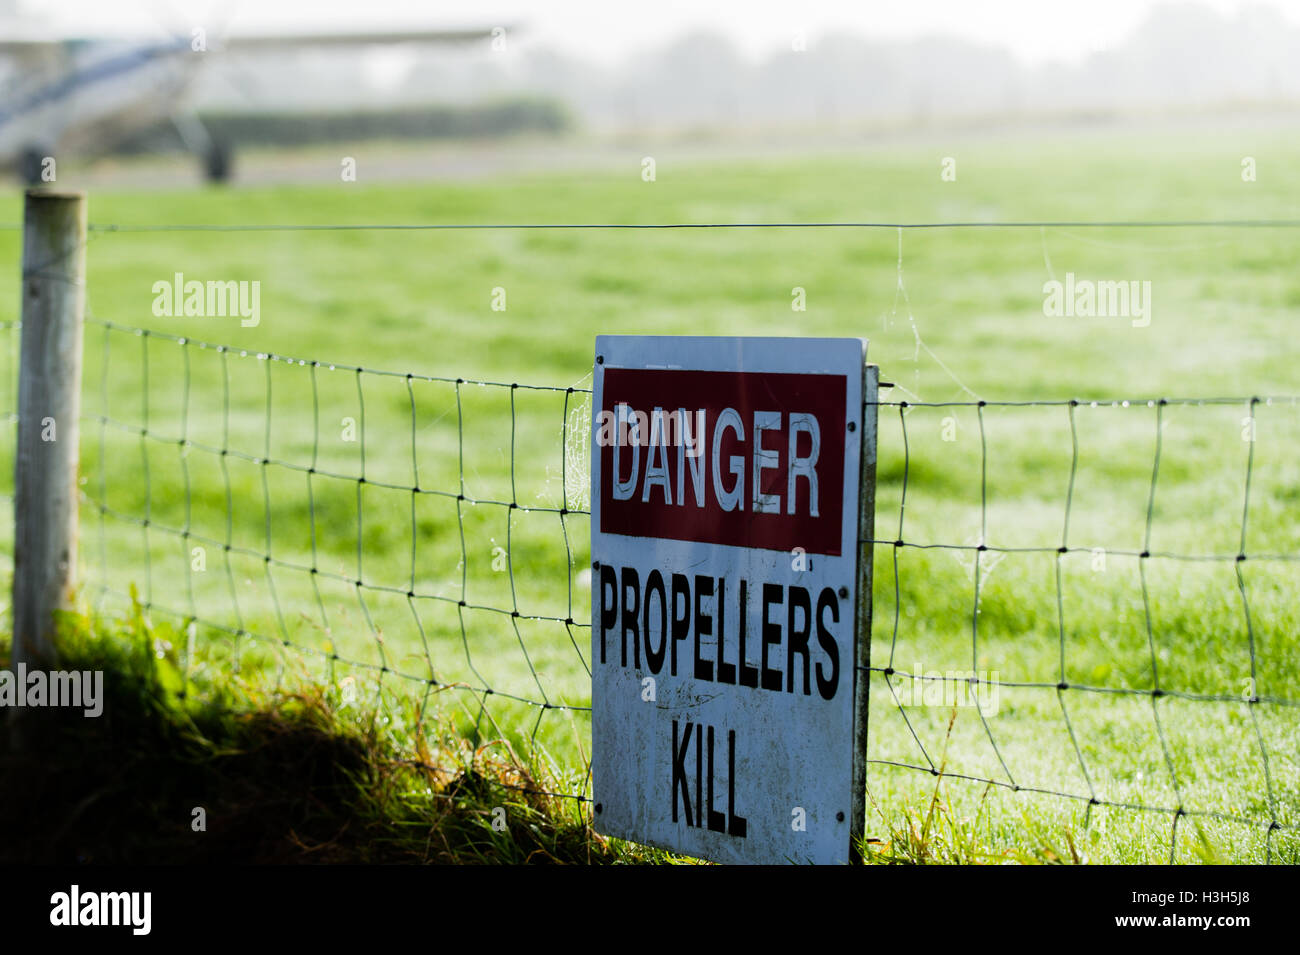 'Danger propellers kill' warning sign, with a Pilatus PC-6 Porter aircraft at the Irish Parachute Club in - Stock Image